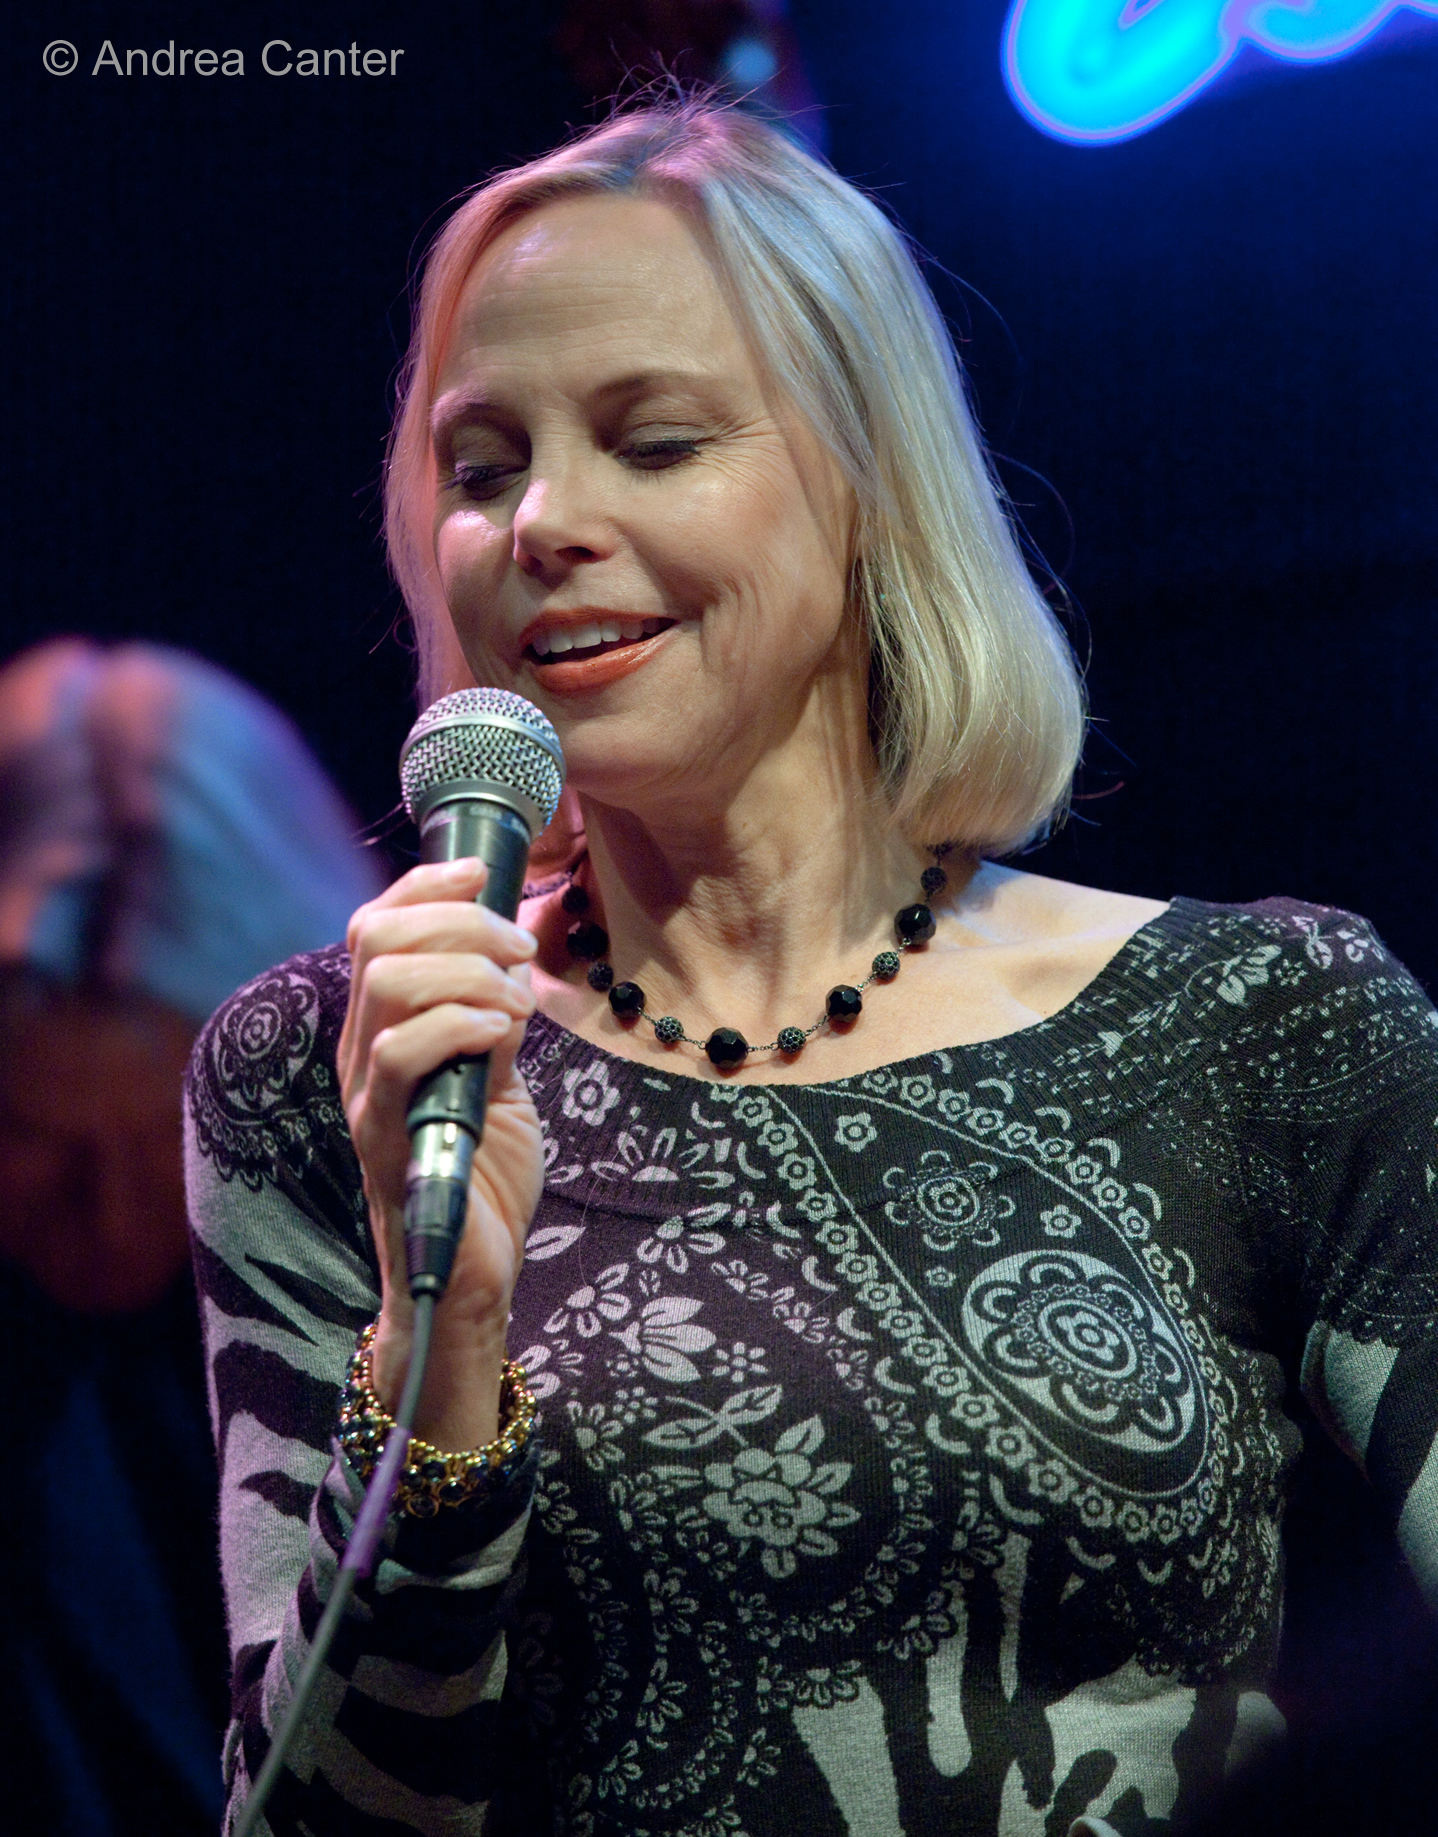 Connie Evingson With Tanner Taylor and Dave Karr in the Dunsmore Room March 30  Jazz Police